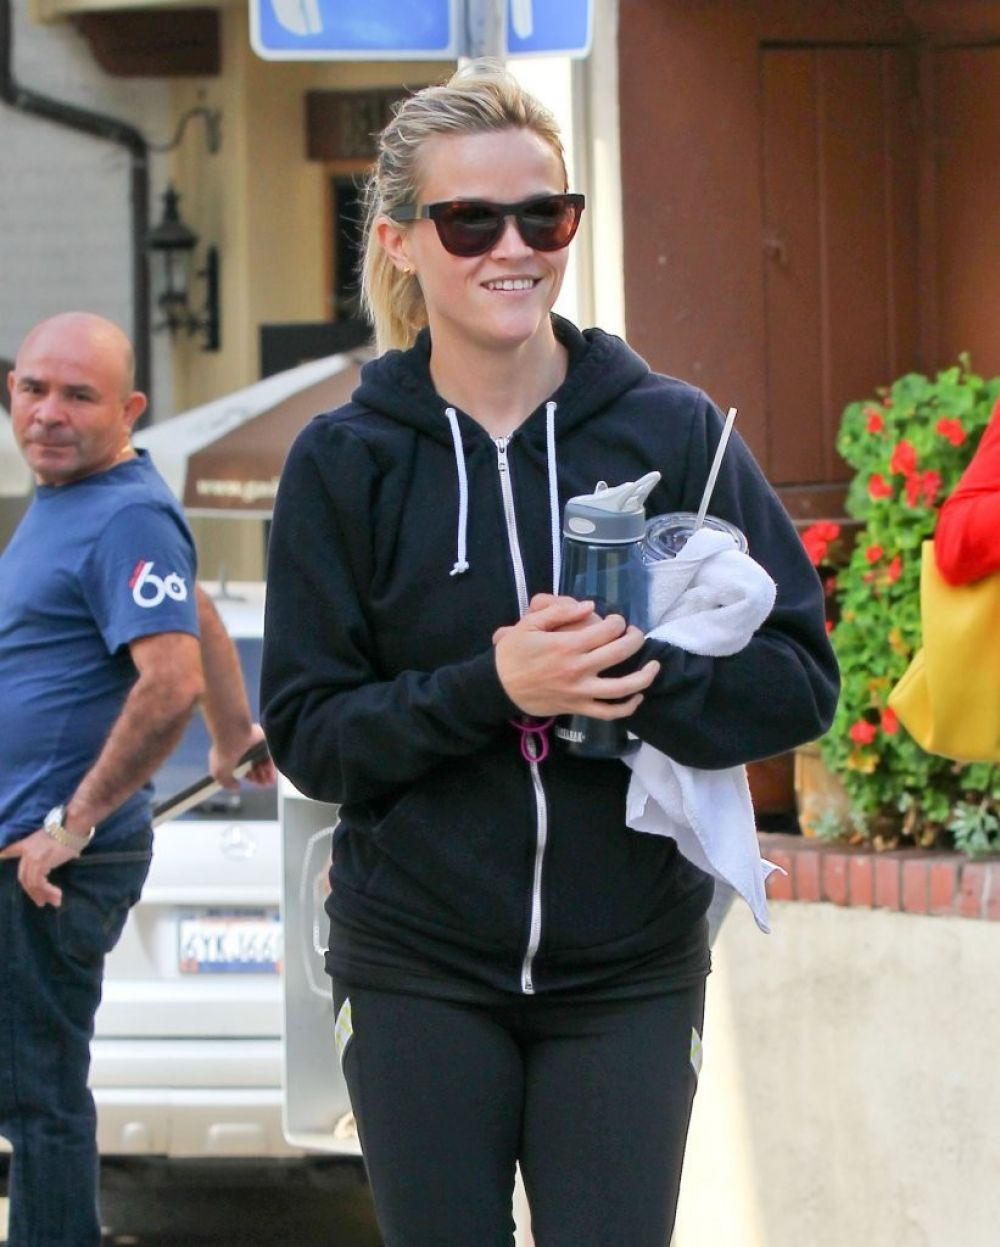 Reese Witherspoon Leaving The Gym In Brentwood